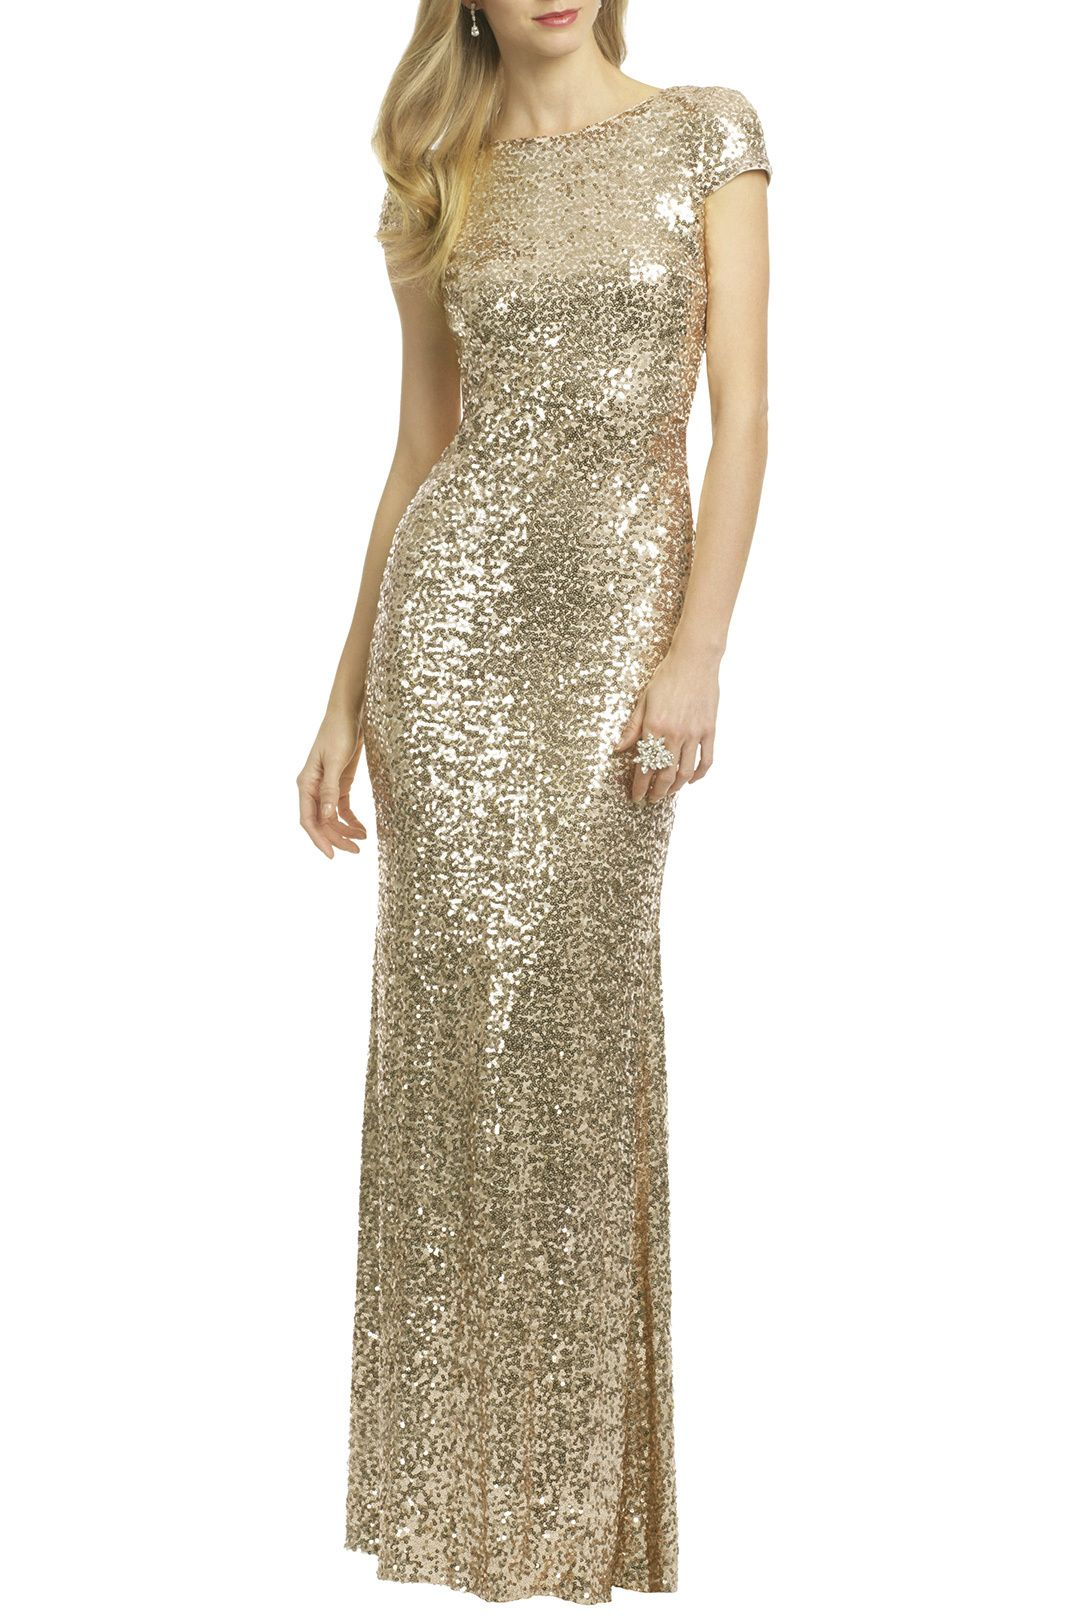 Badgley mischka night at the oscars gown bridesmaid dresses